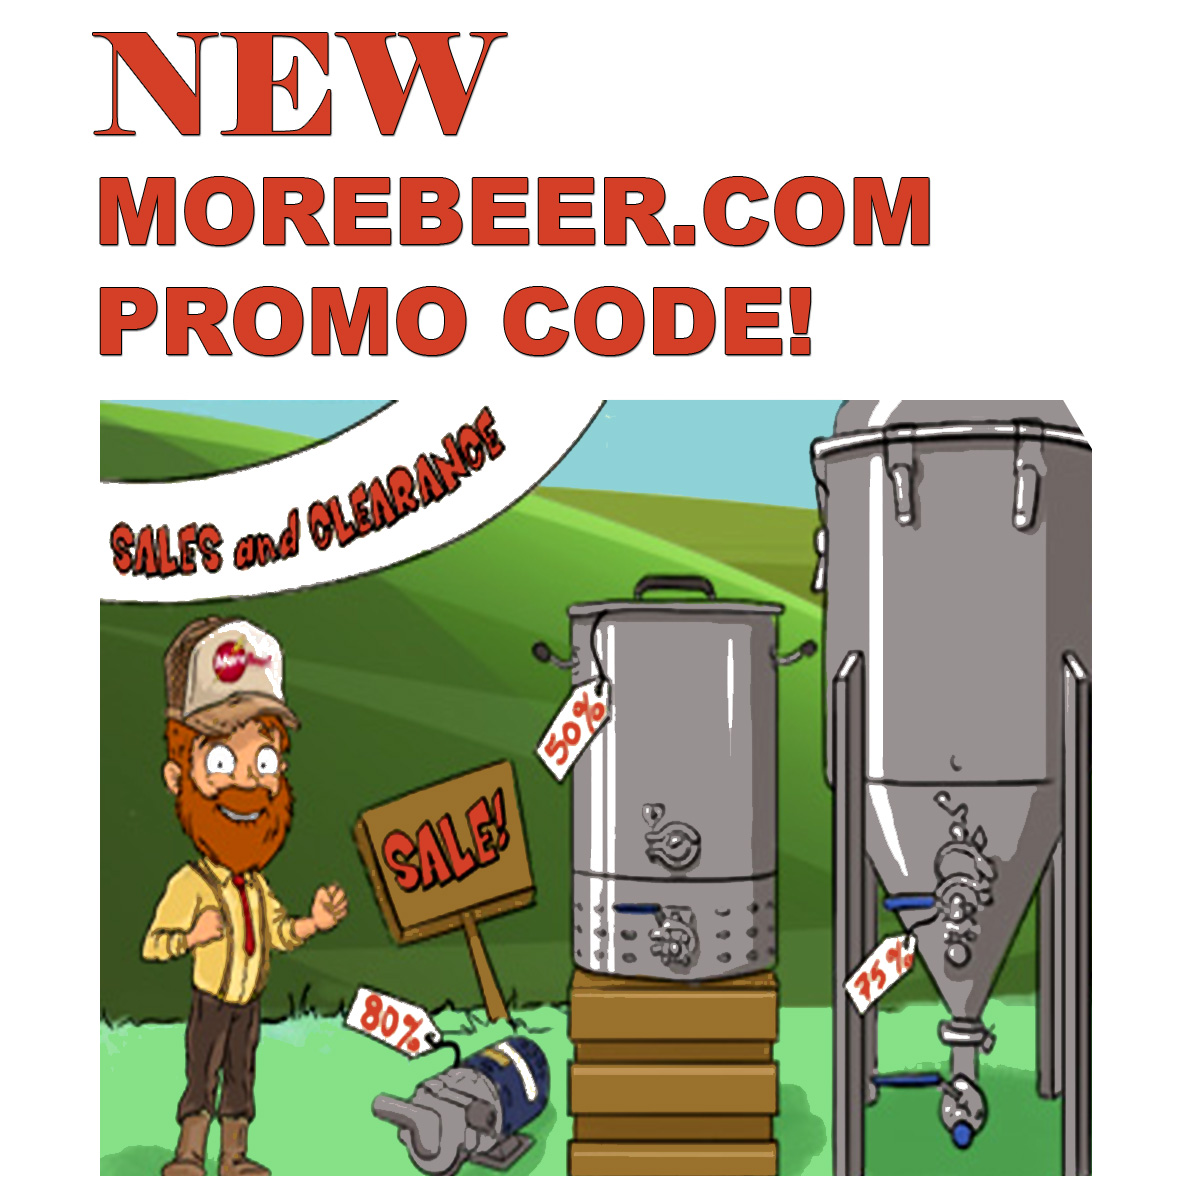 Save Big During the MoreBeer.com Home Brewing Sale Going On Now at MoreBeer.com Coupon Code